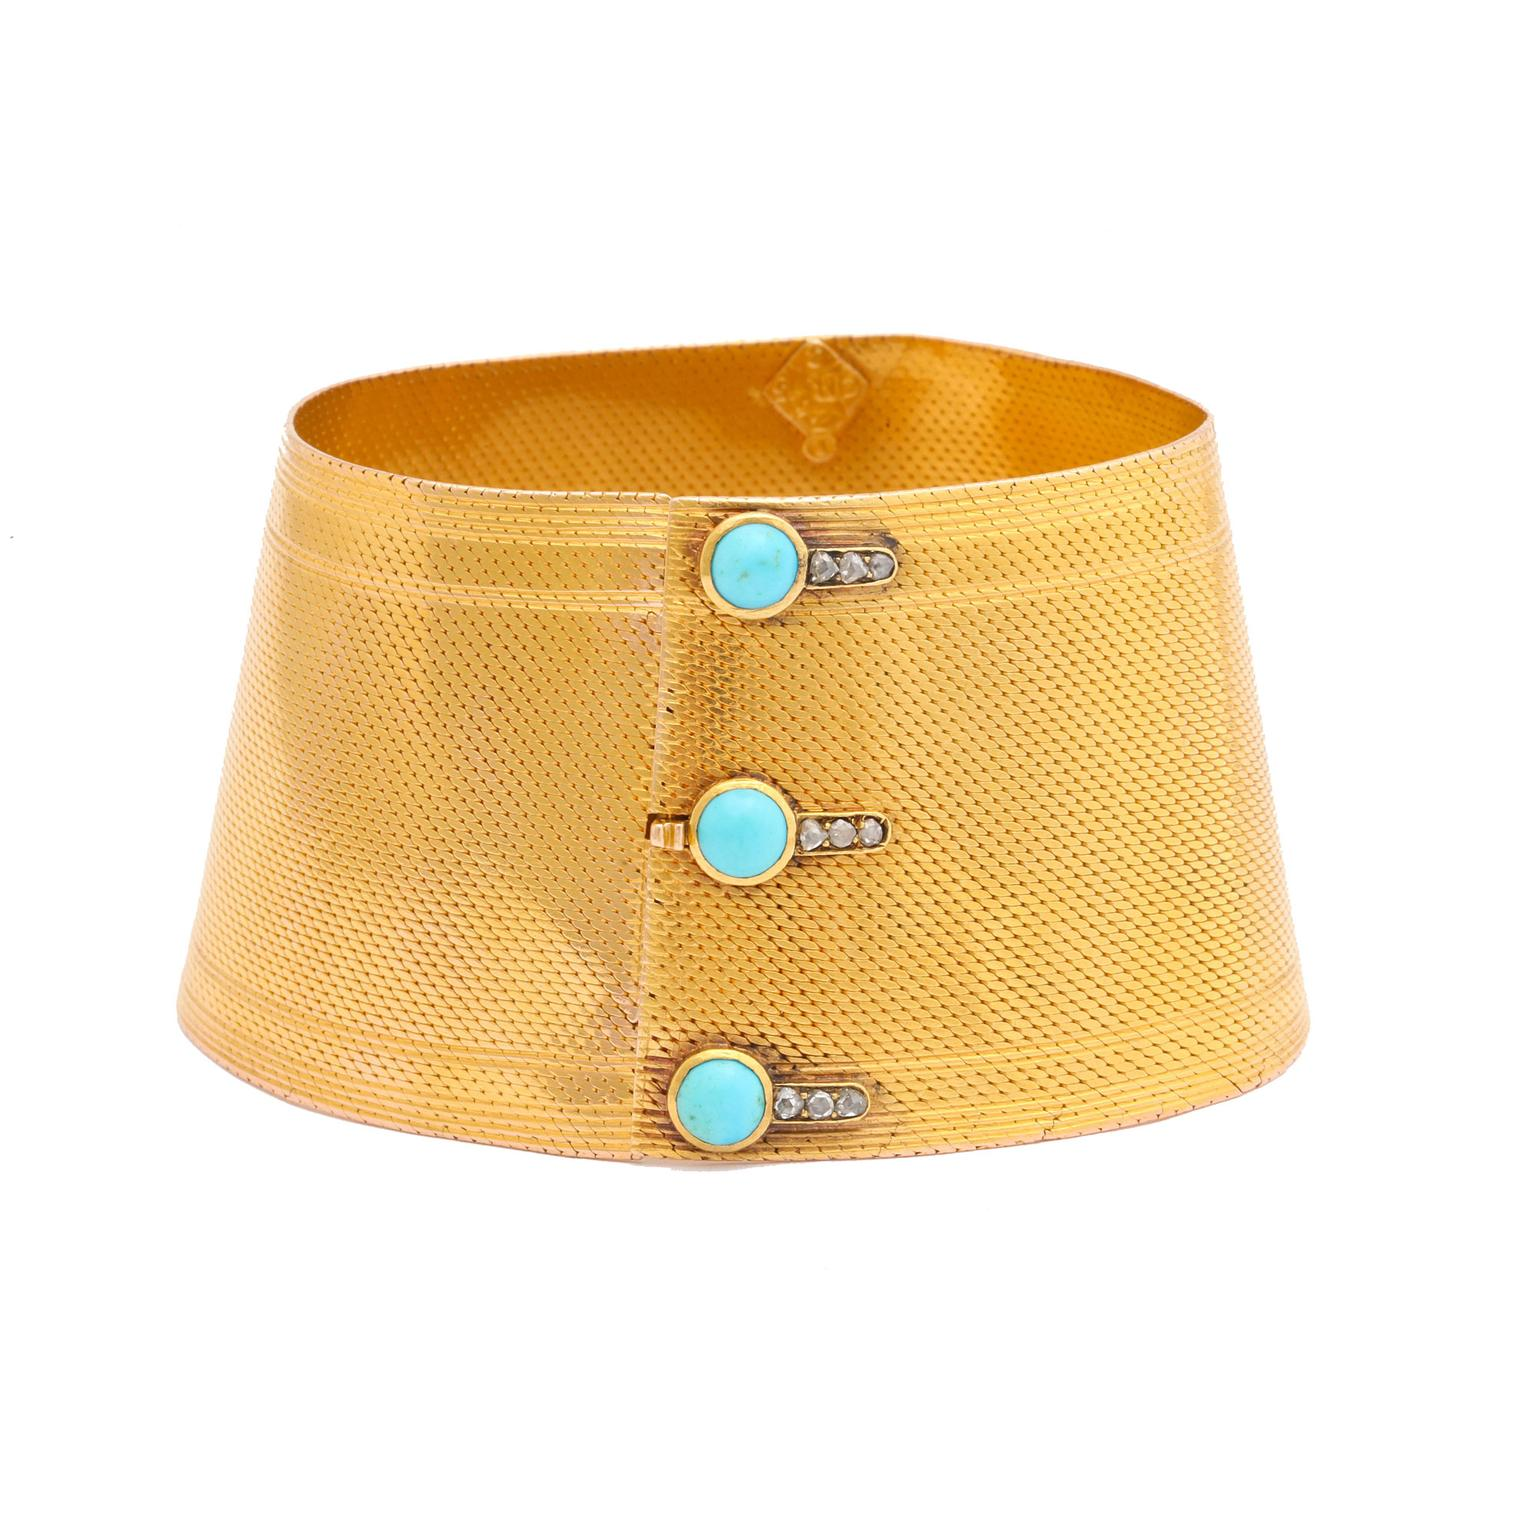 Pat Saling gold cuff bracelet with turquoise buttons